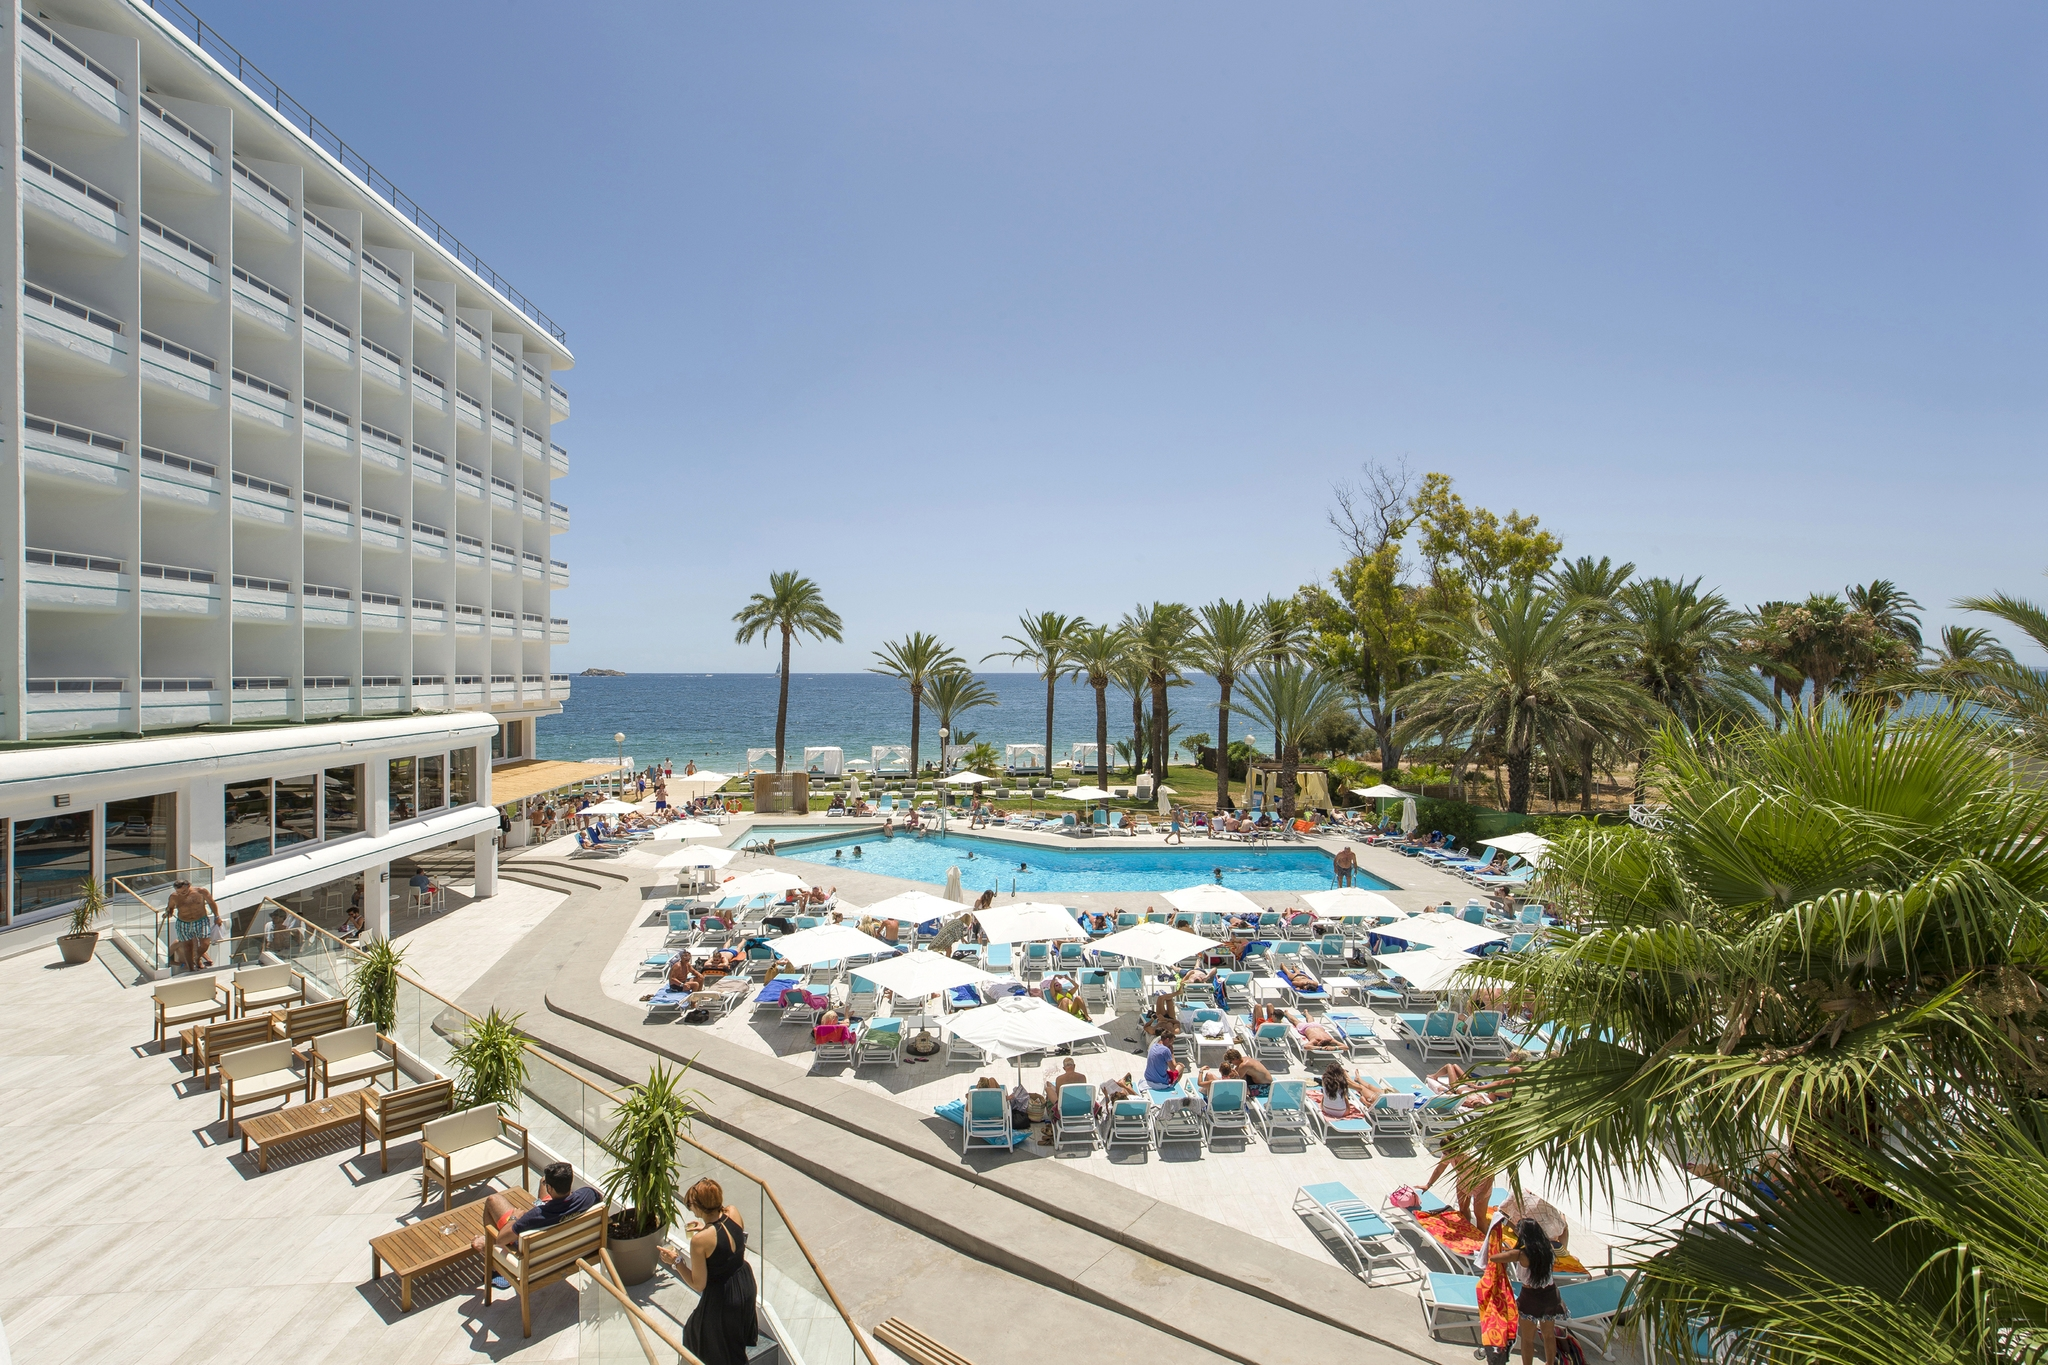 Hotel Playasol The New Algarb Ibiza